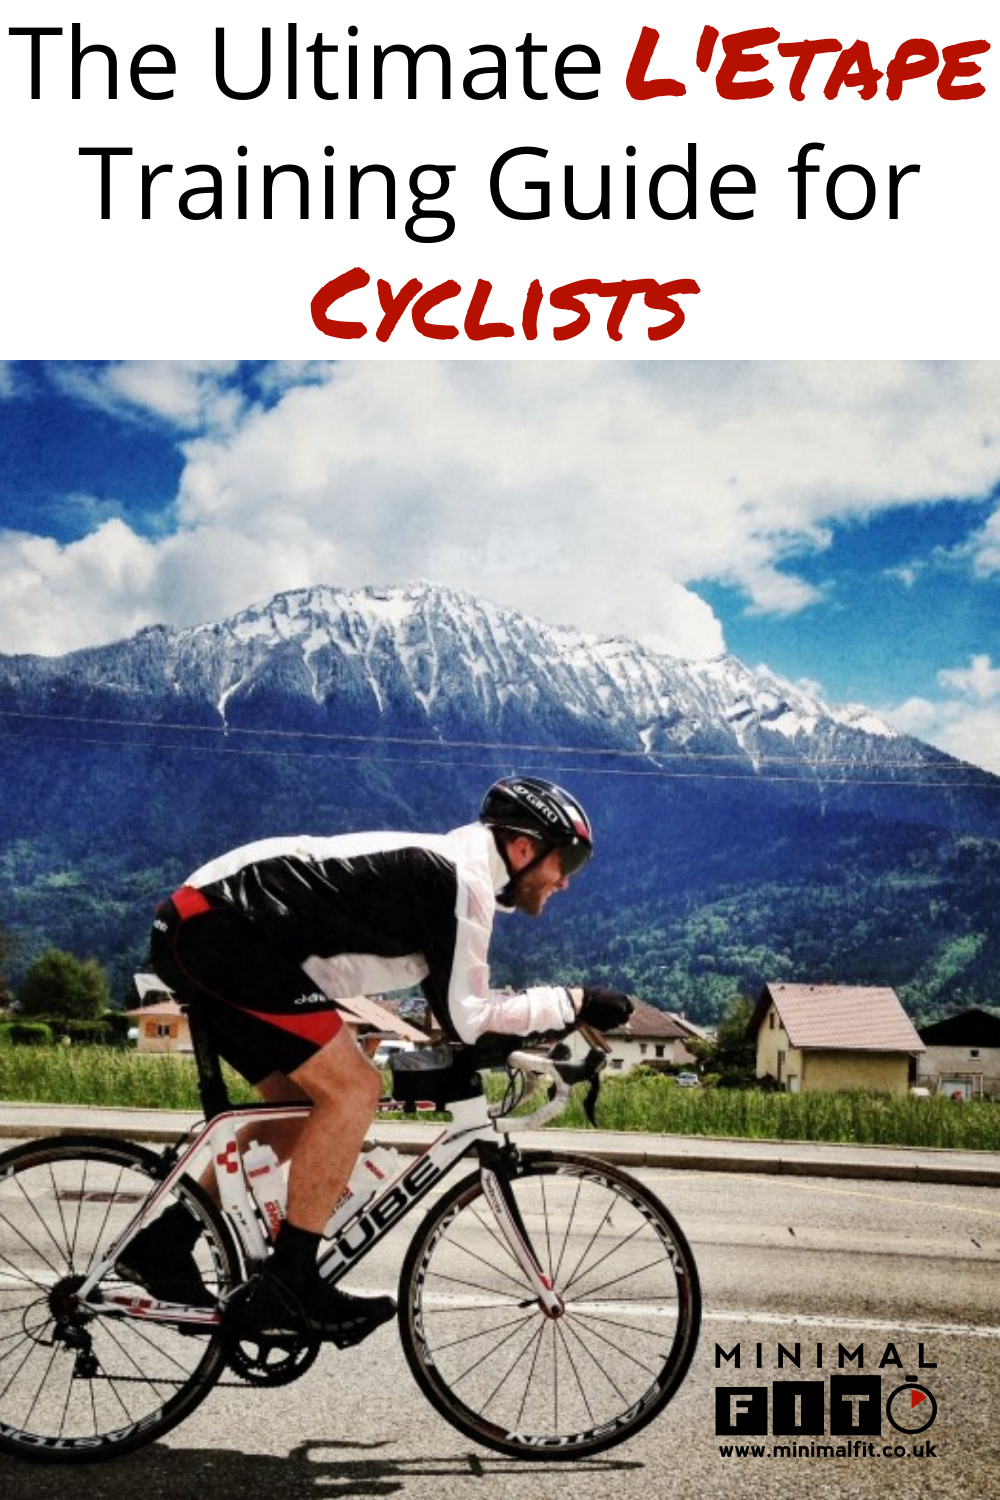 Every year is different, but the routes are always in the mountains. I wanted to create a guide to help others train for similar events and to keep a record of what I did and what results I got. #fitness #fitnessmotivation #fit #motivation #workoutmotivation #workouttips #workoutinspiration #workoutideas #healthylifestyle #healthybody #fitnessjourney #fitnesslife #fitnessgoals #minimalfit